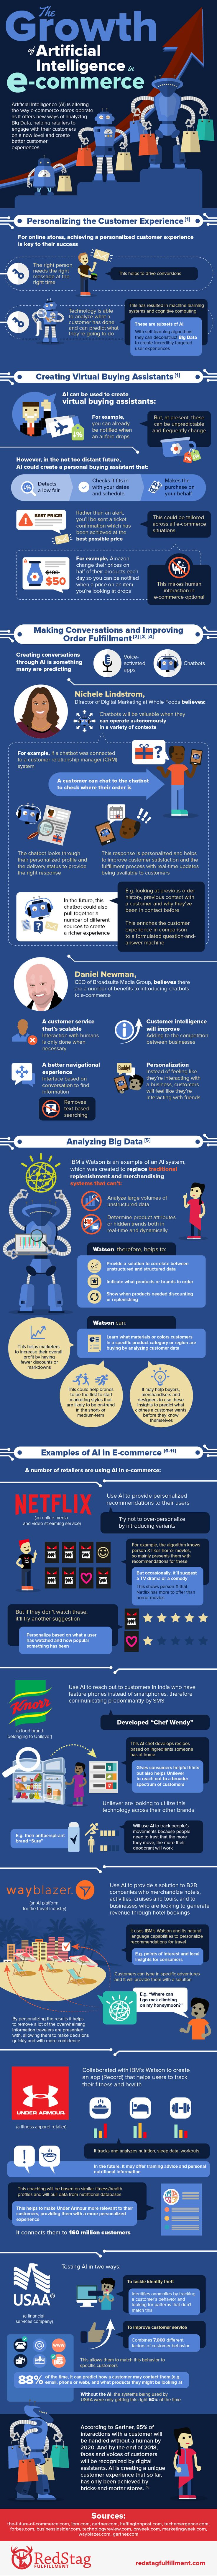 The Growth of Artificial Intelligence in E-commerce #Infographic #eCommerce